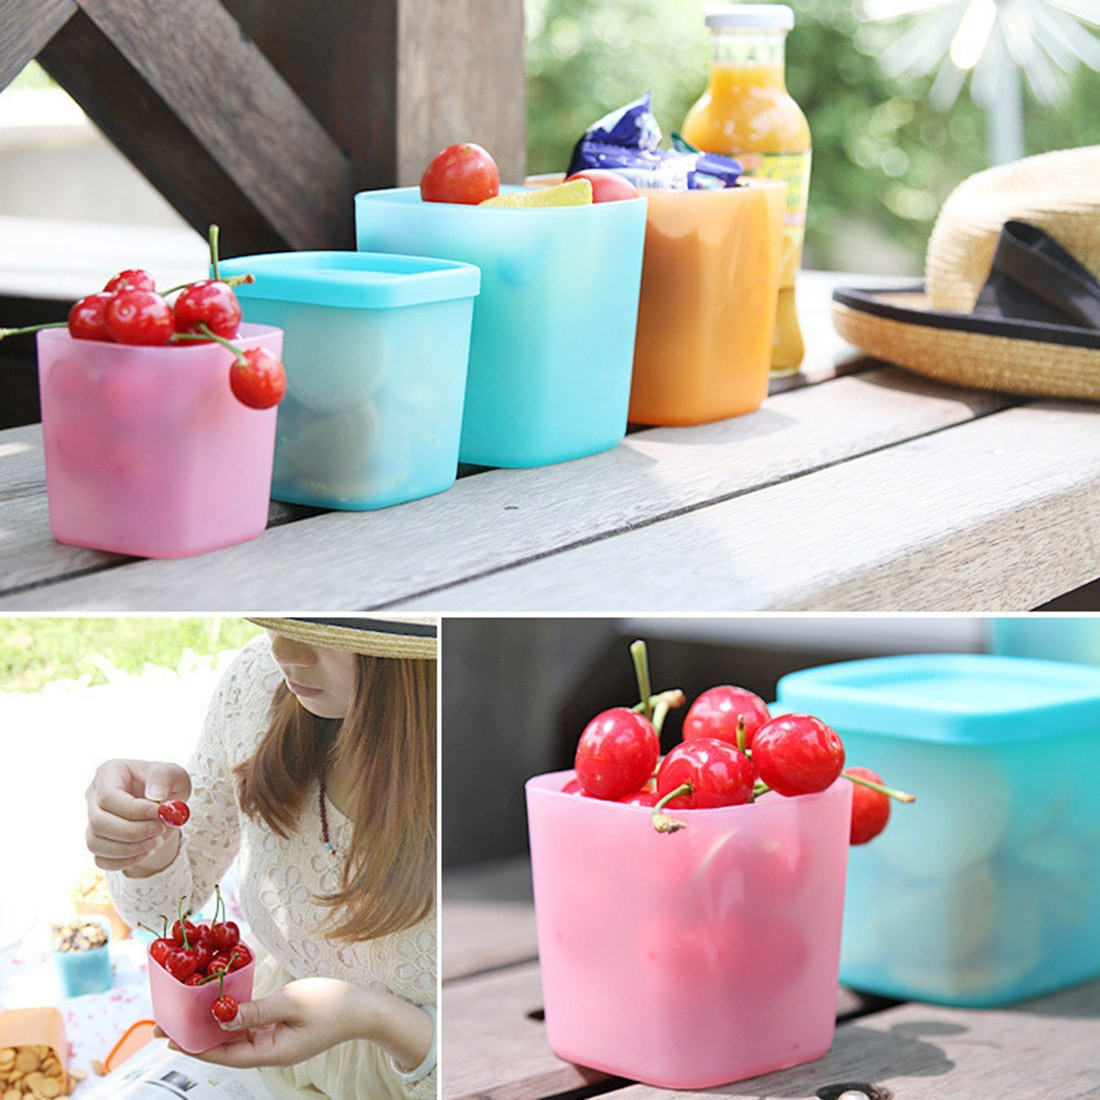 Best Seller Refrigerator Crisper Sealed Transparent Plastic Box Kitchen Sorting Food Storage Box Container Accessories(China (Mainland))